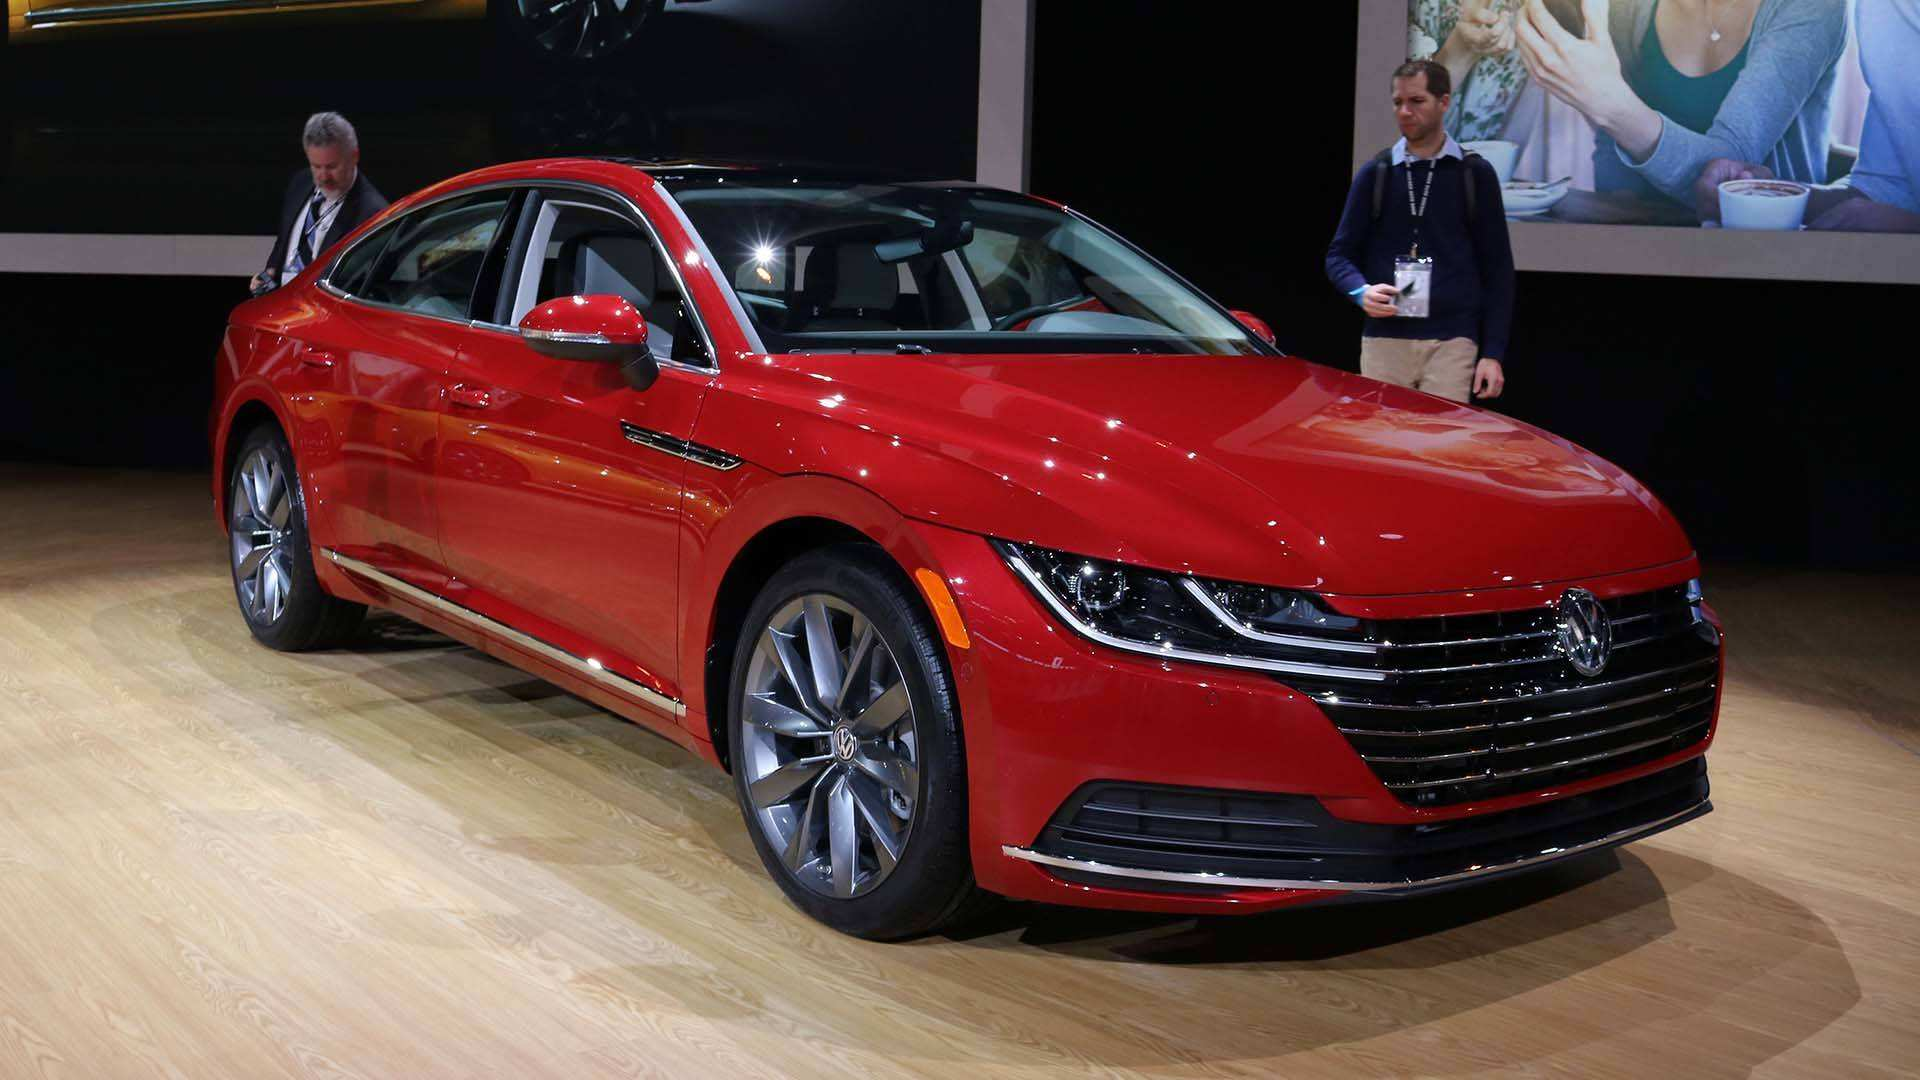 65 The 2019 Vw Arteon First Drive